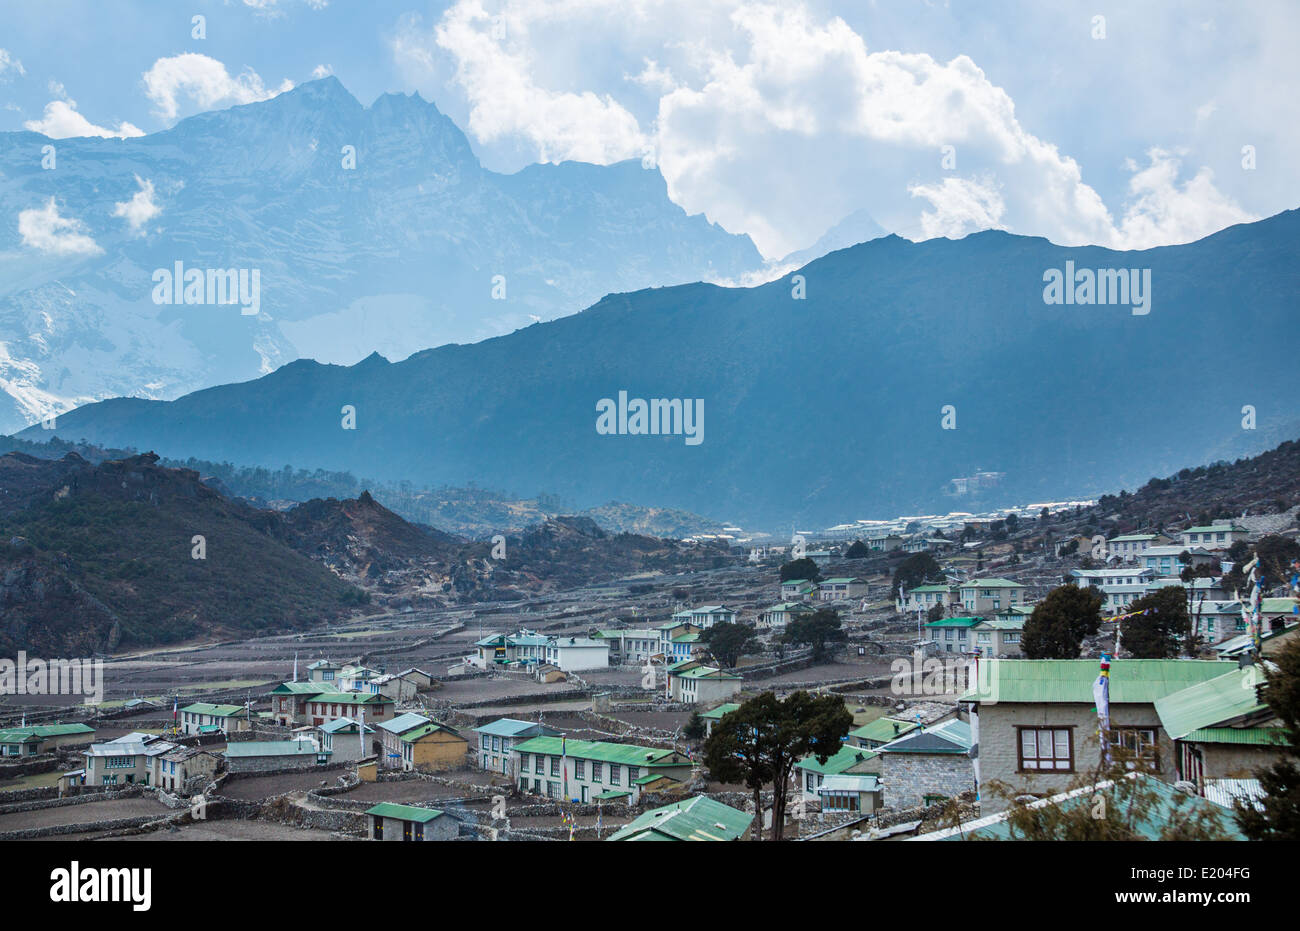 Nepal village of Khumjung in the evening, cast in the shadow of the Himalayas rising in the distance remote, Mt - Stock Image